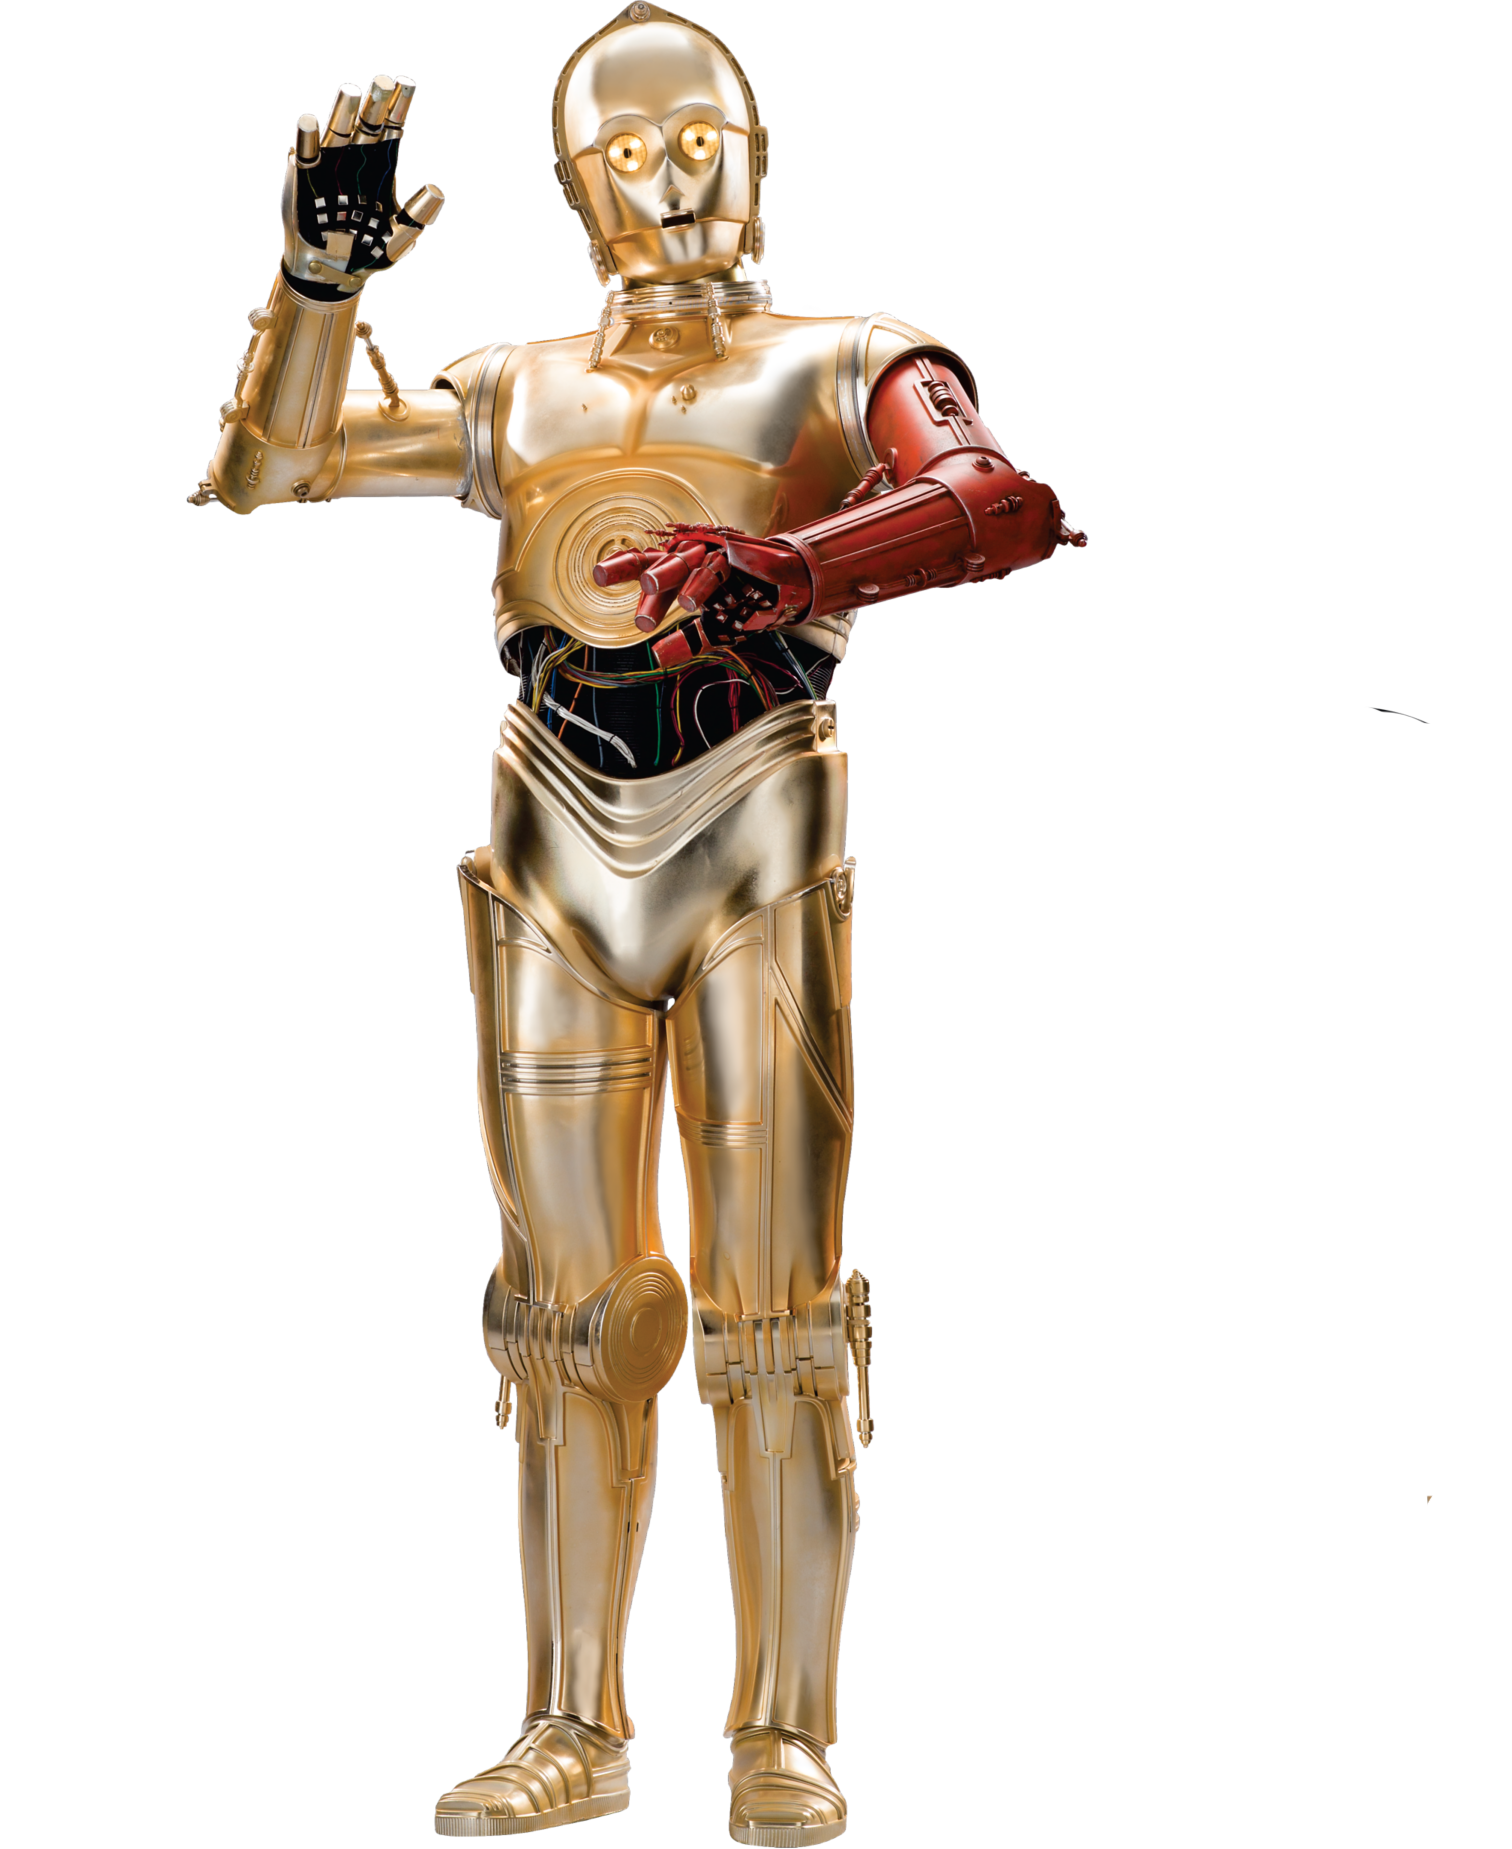 red arm c 3po star wars ep7 the force awakens characters cut out with transparent background_23